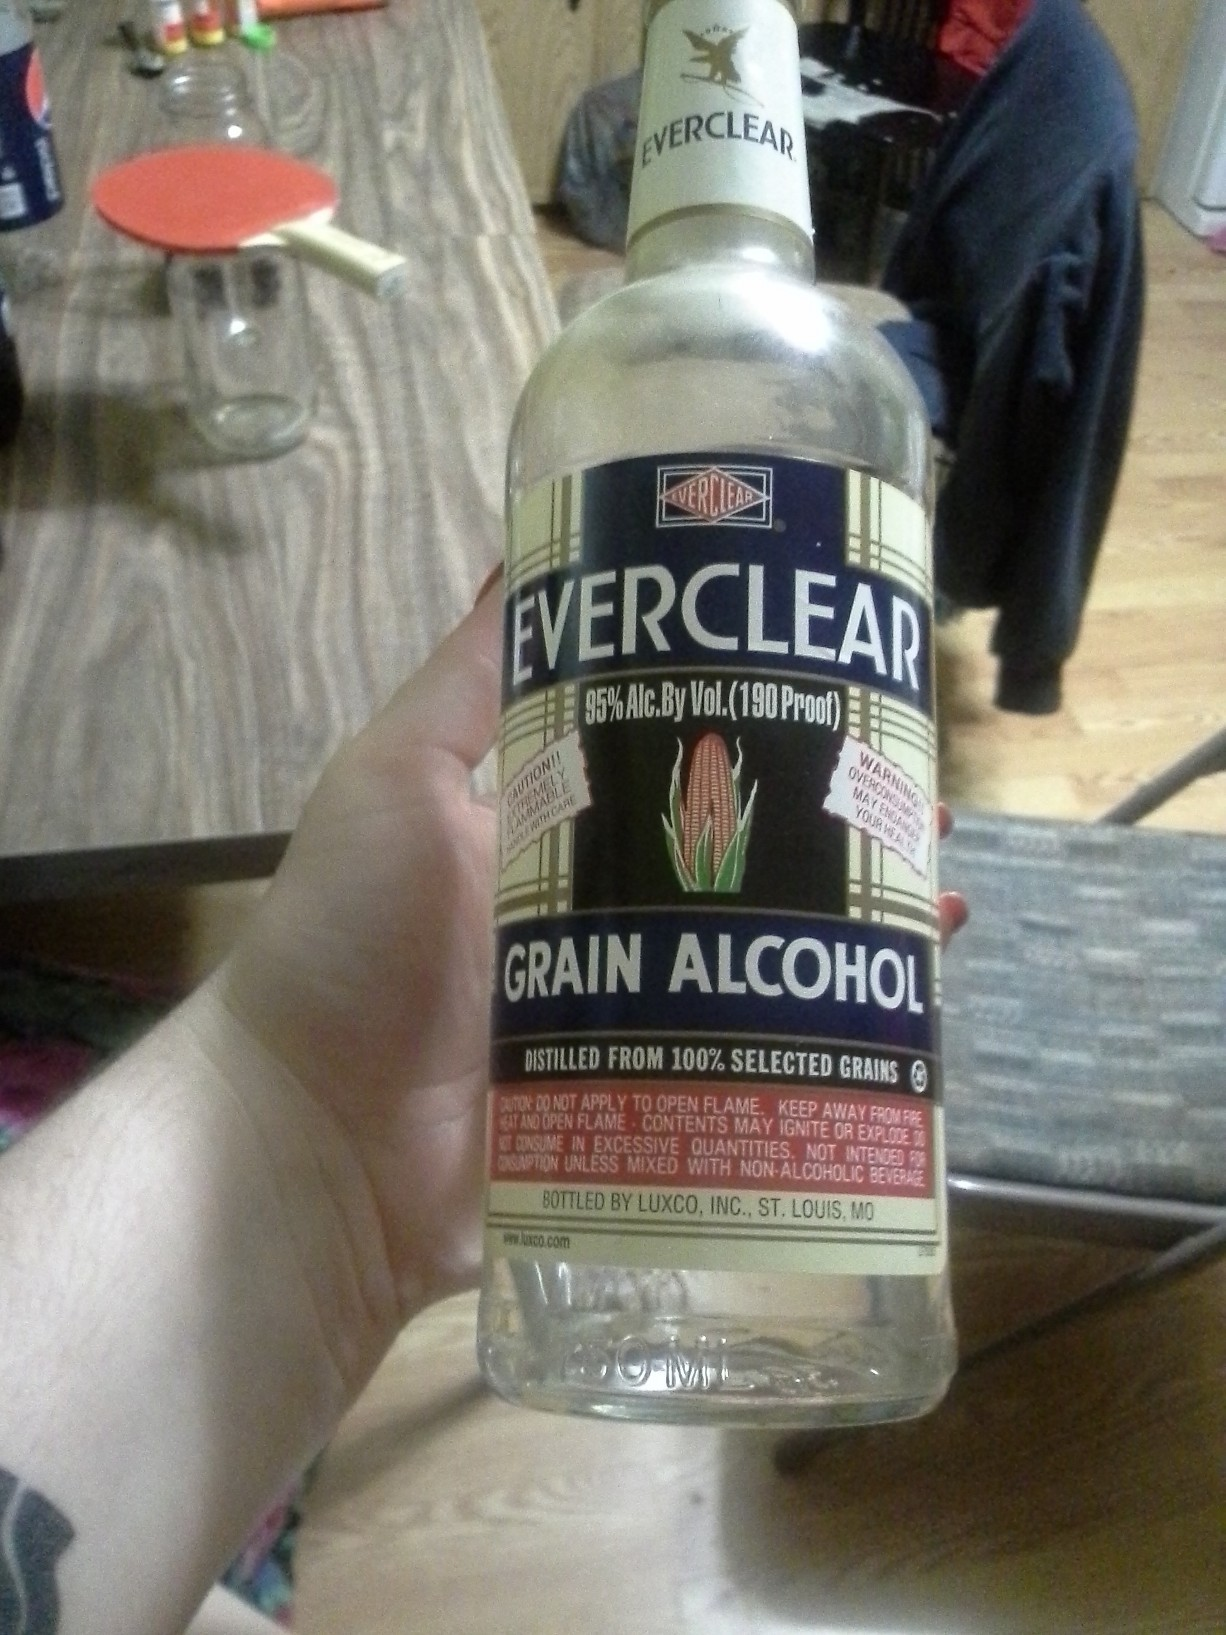 I'm on that good kush and everclear lol